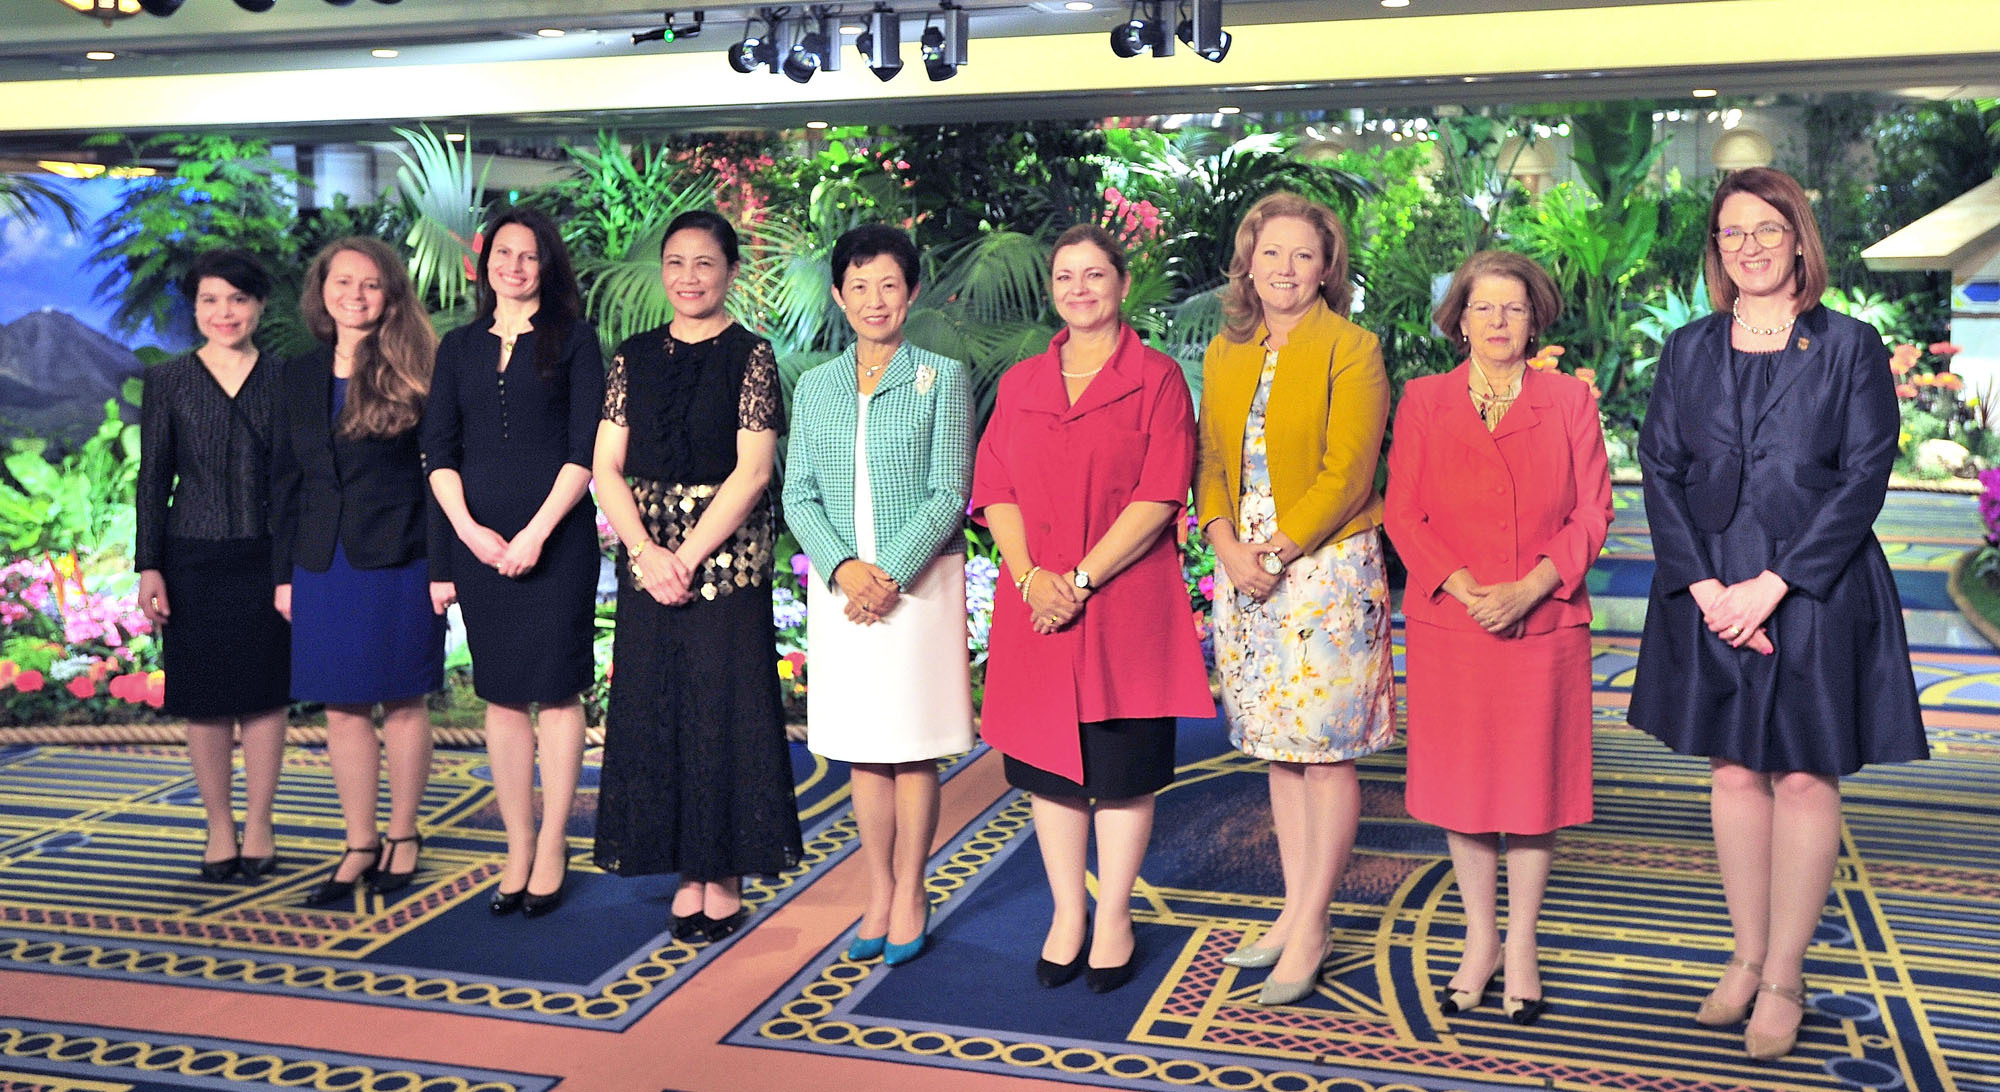 Ambassadors and ambassador's wives from Tonga, Costa Rica, Bangladesh, Romania, Lithania, Portugal, Croatia, South Africa, Thailand and Denmark participated in the 17th Annual World Gardening Fair in Hotel Okura Tokyo on May 2. Princess Takamado (center) poses with participants at the opening ceremony. |   YOSHIAKI MIURA